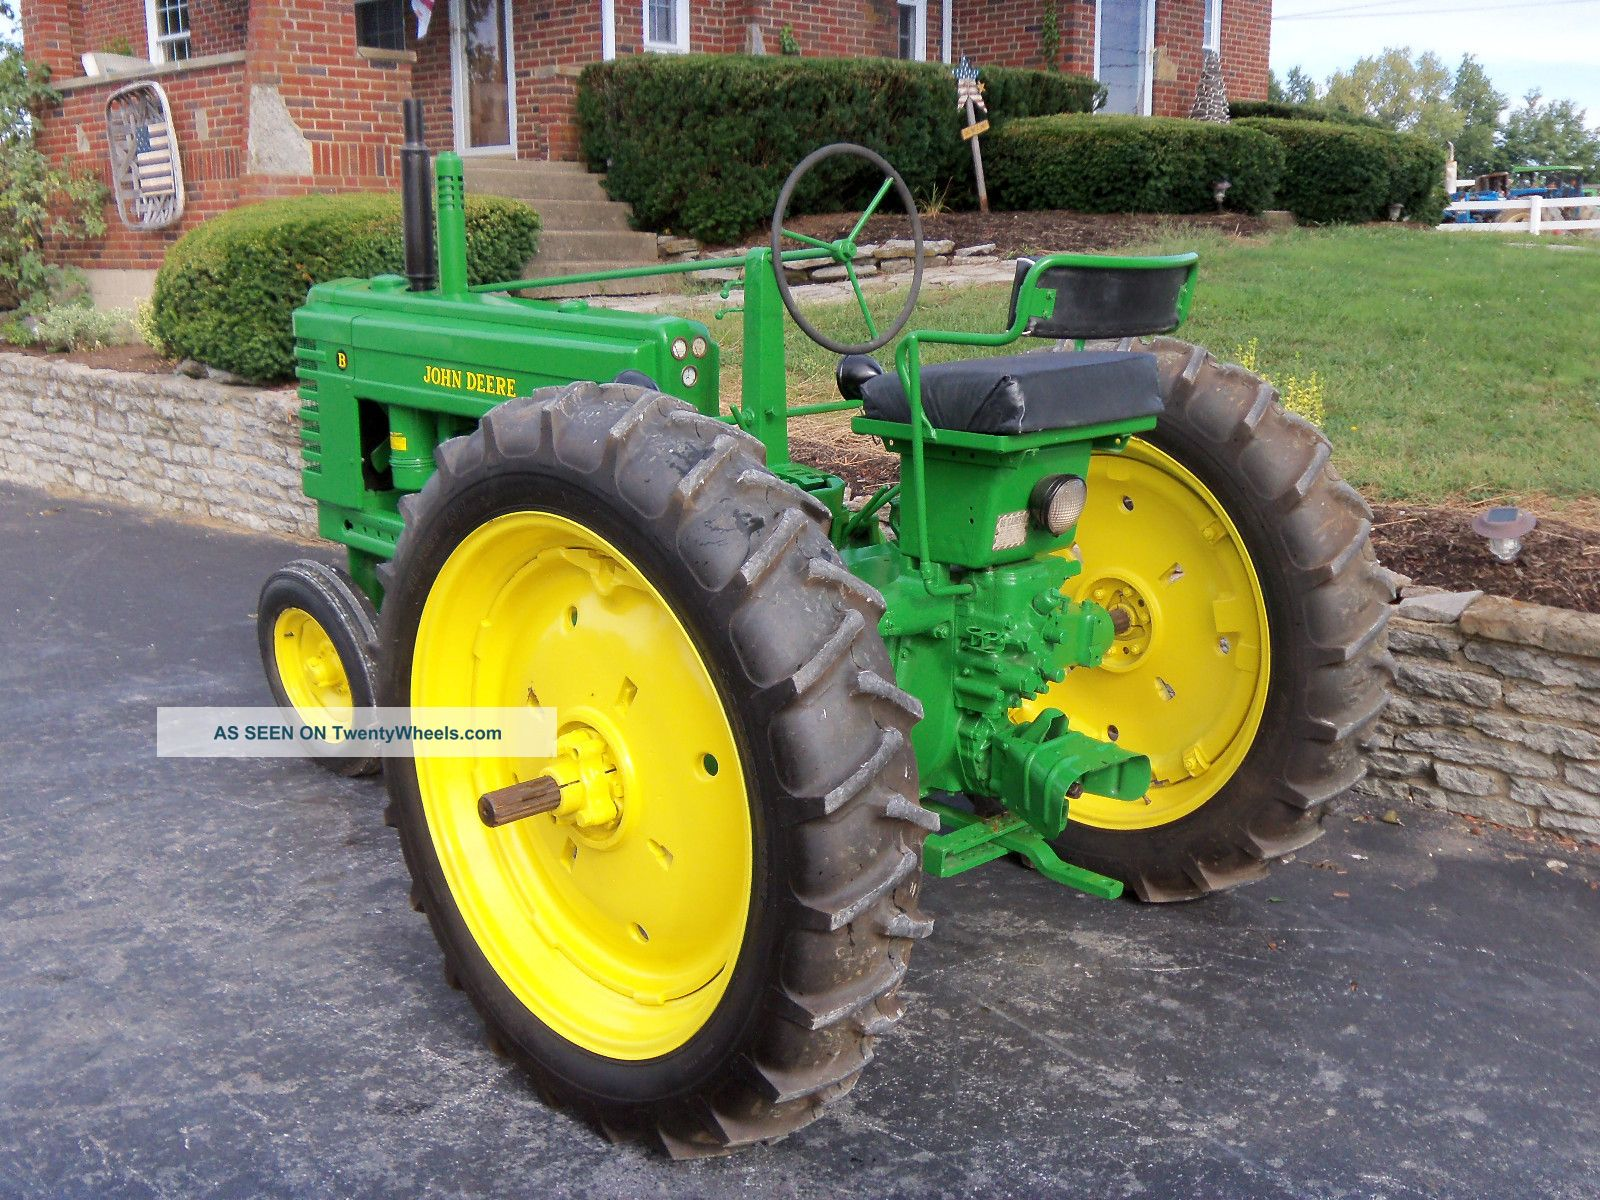 Restored Antique Tractors : John deere b tractor restored